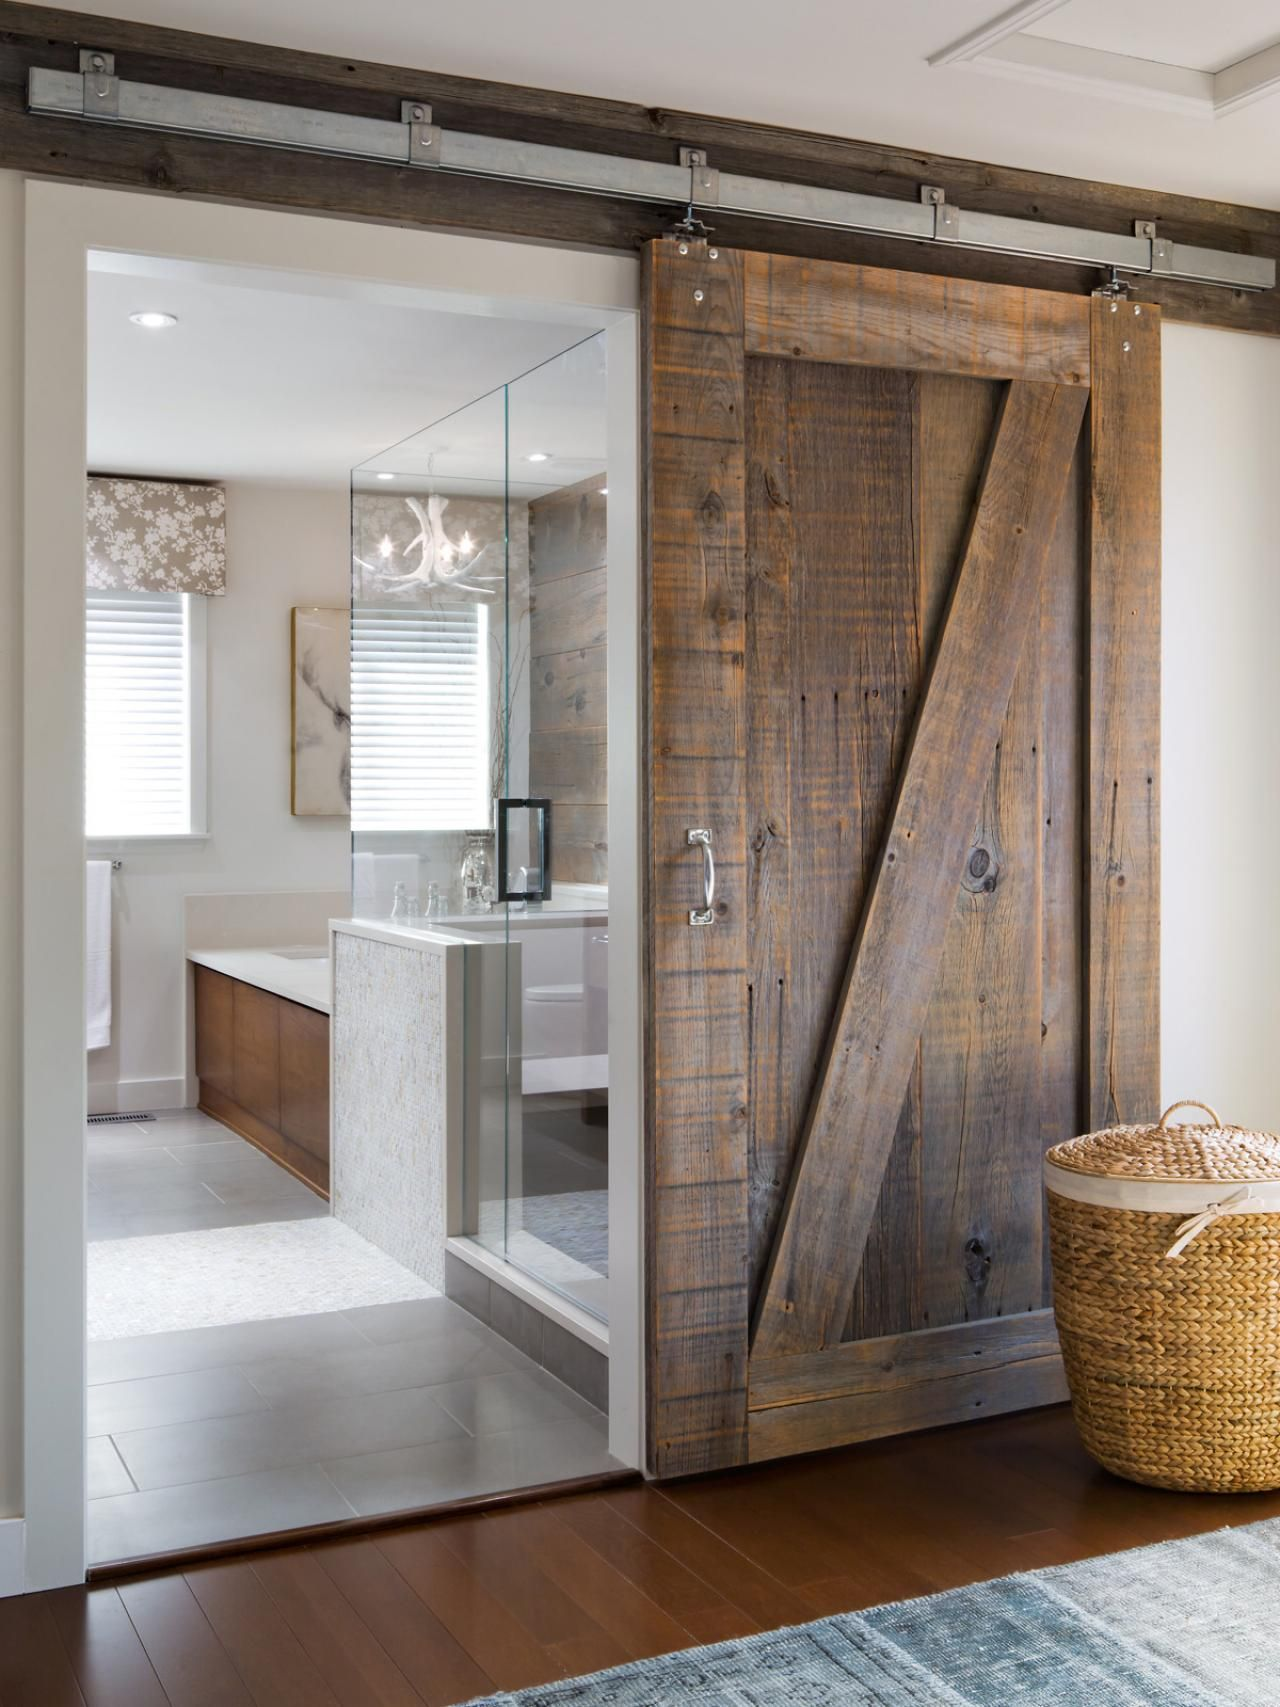 Barn door design ideas barn door designs door design and barn doors